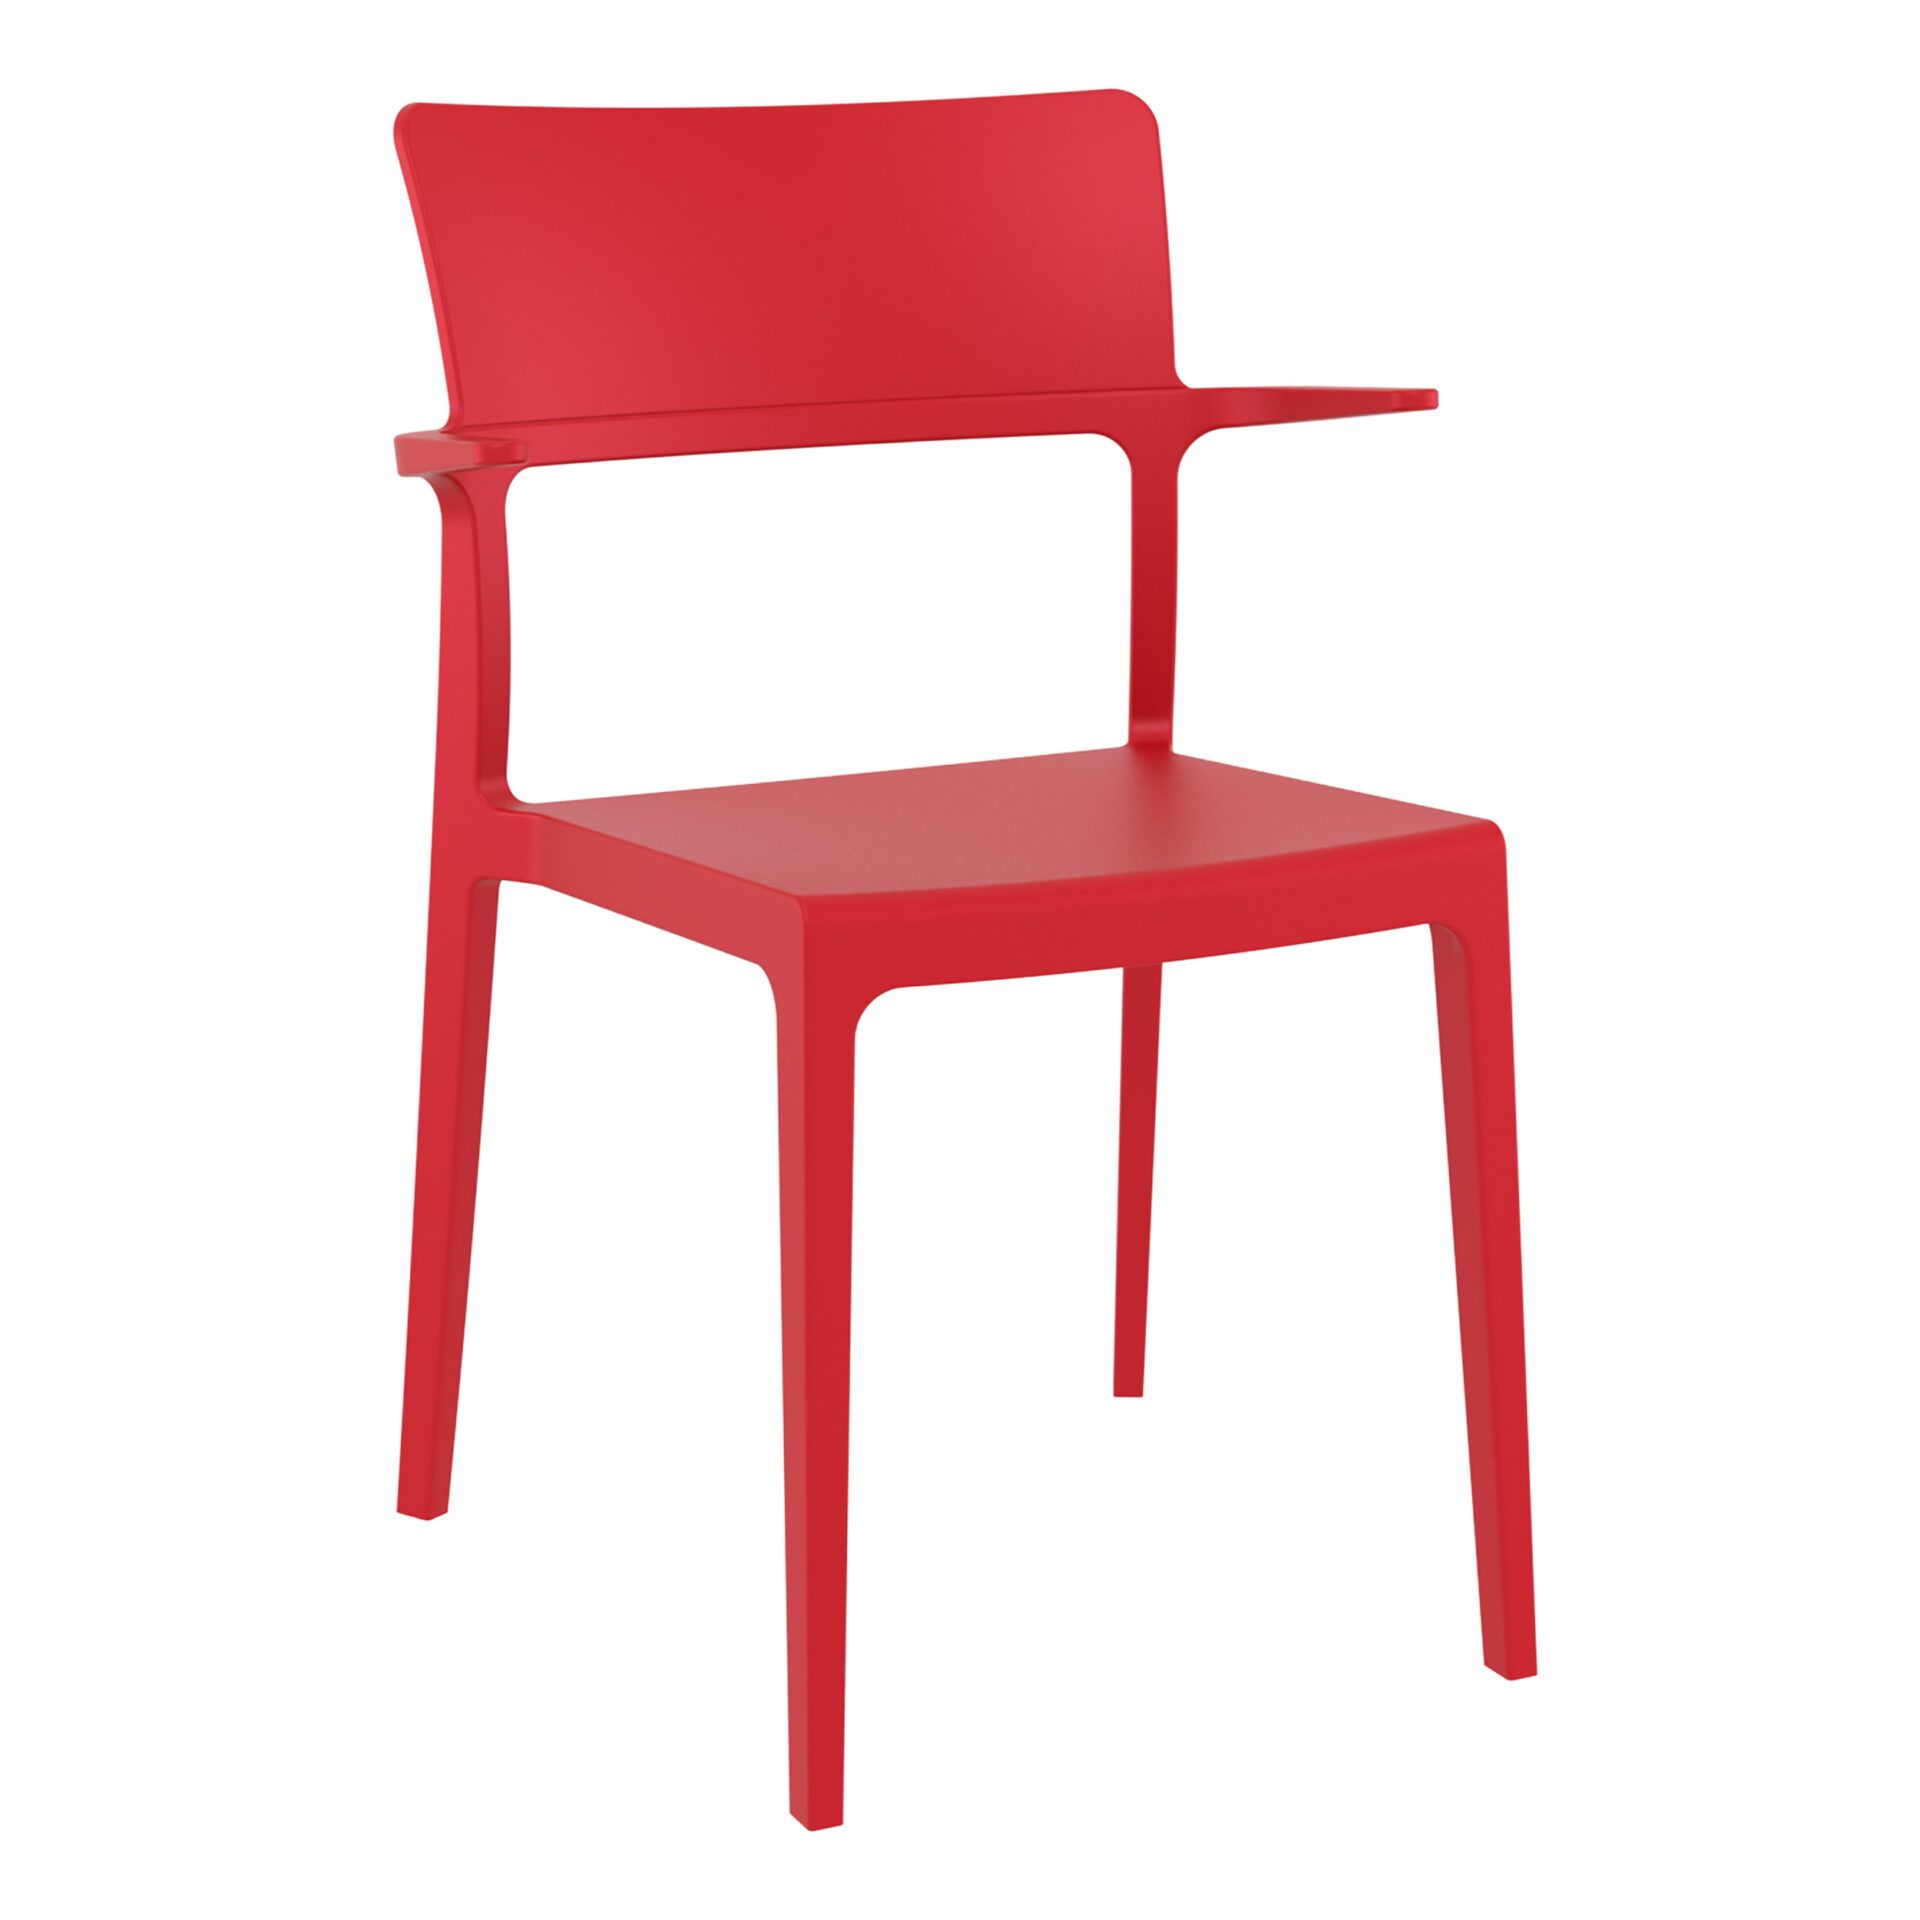 hospitality dining polypropylene plus chair red front side